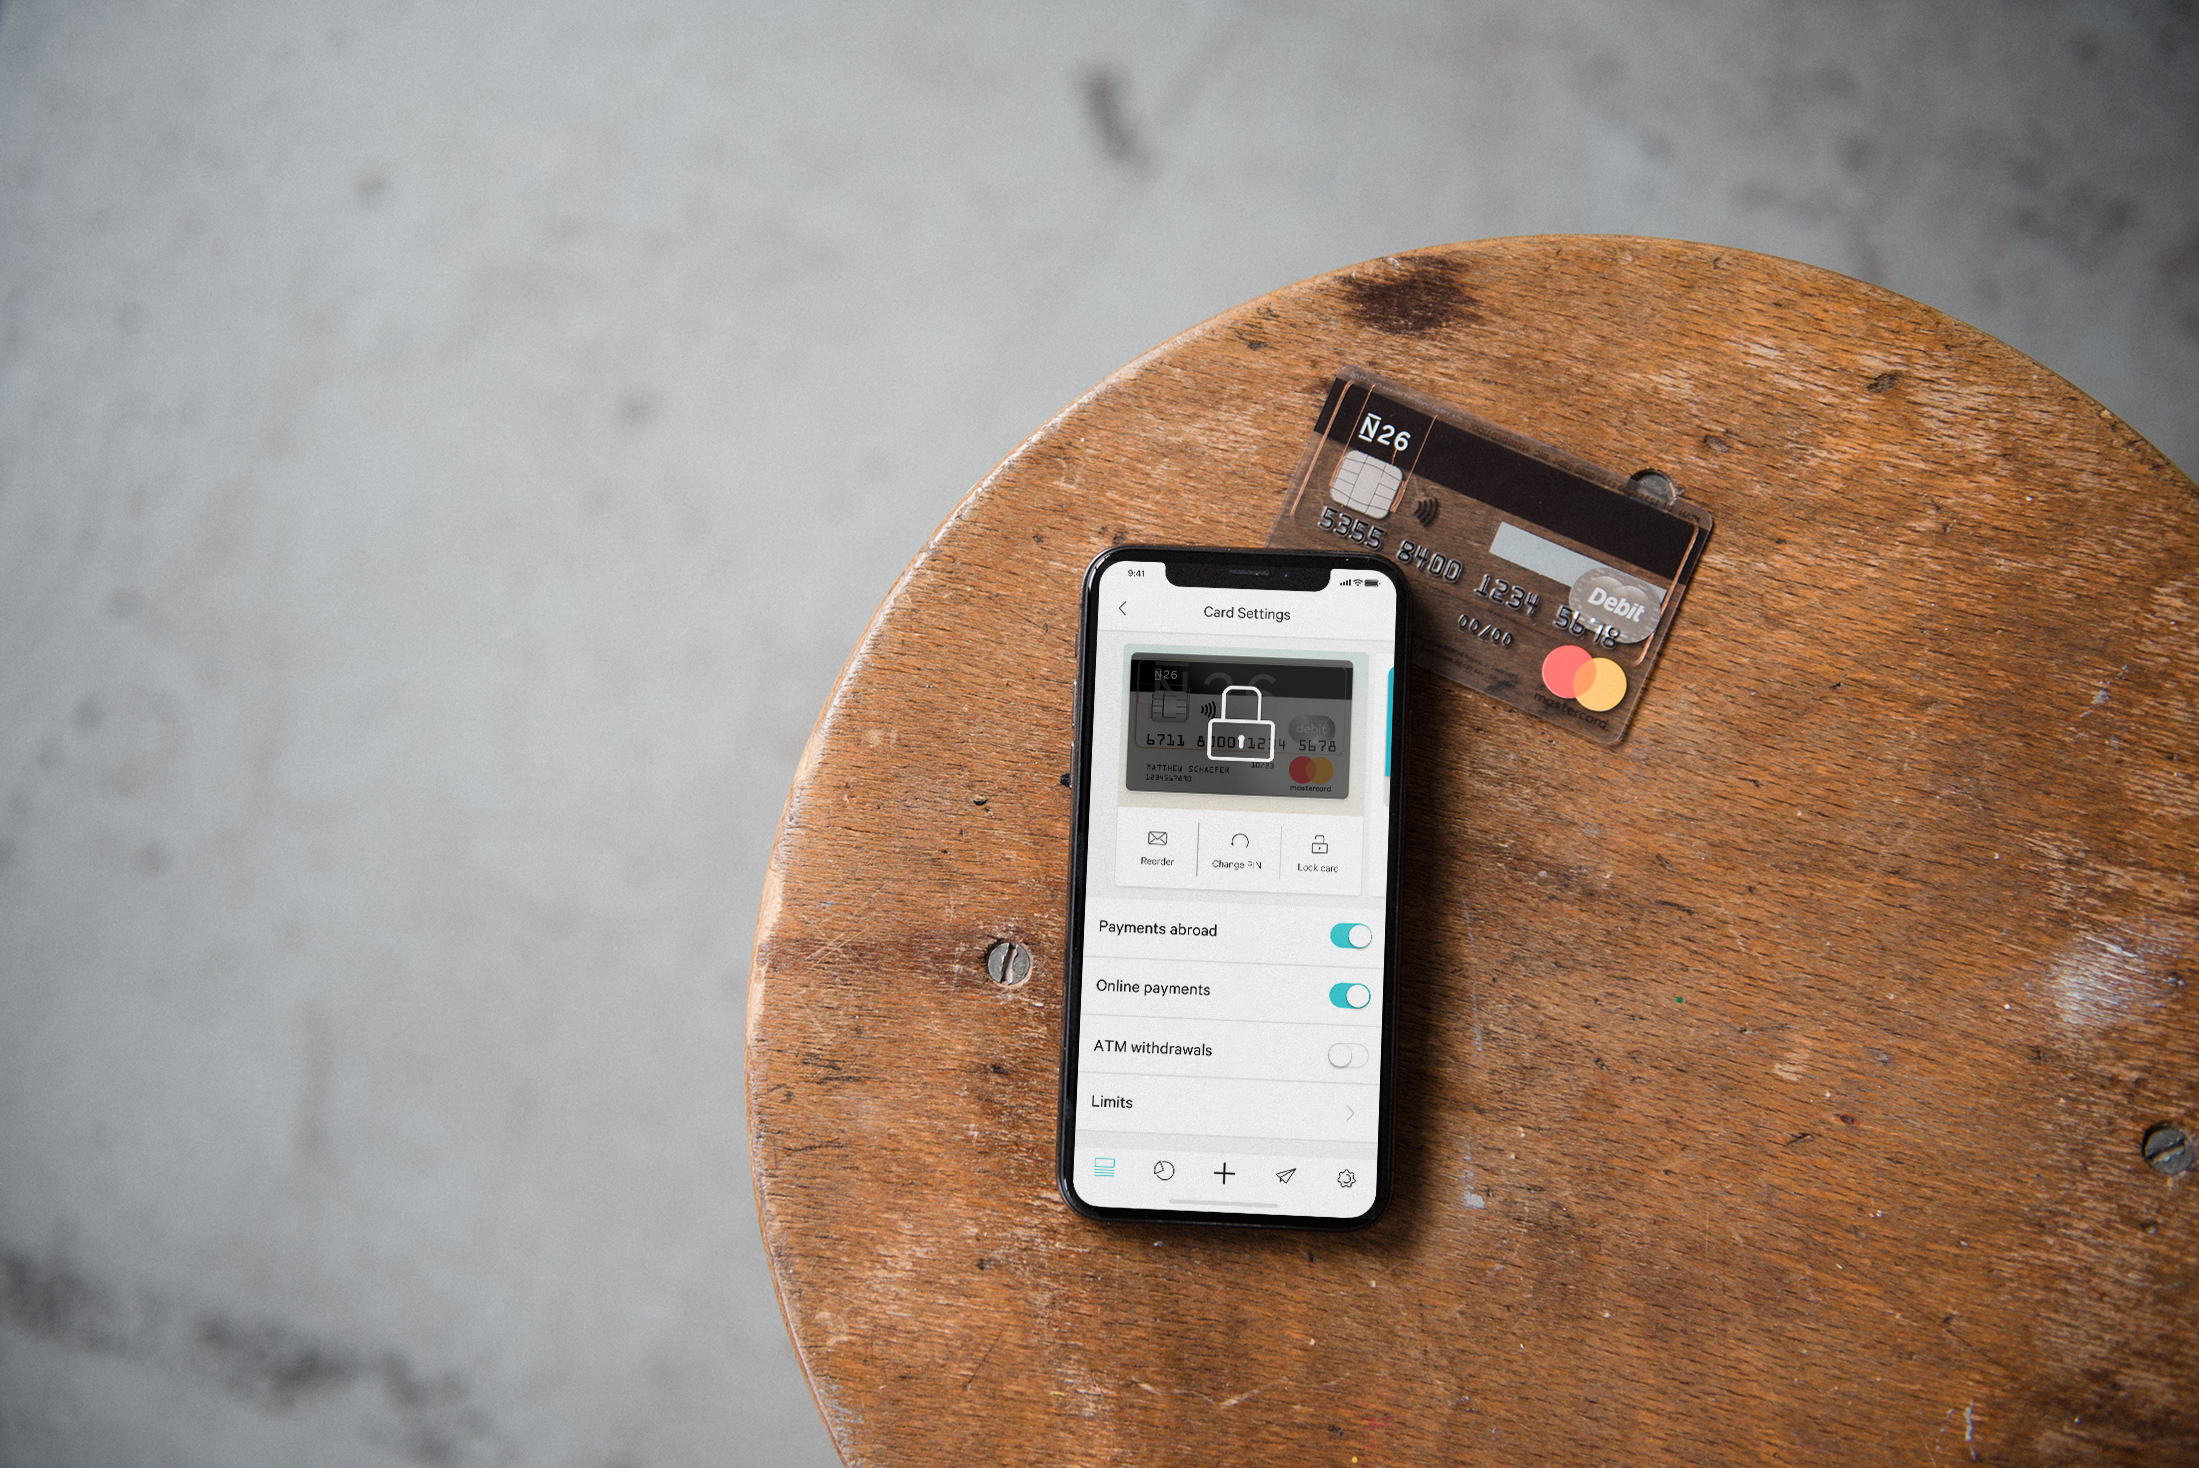 N26 iPhoneX Standard Card Card Settings UK